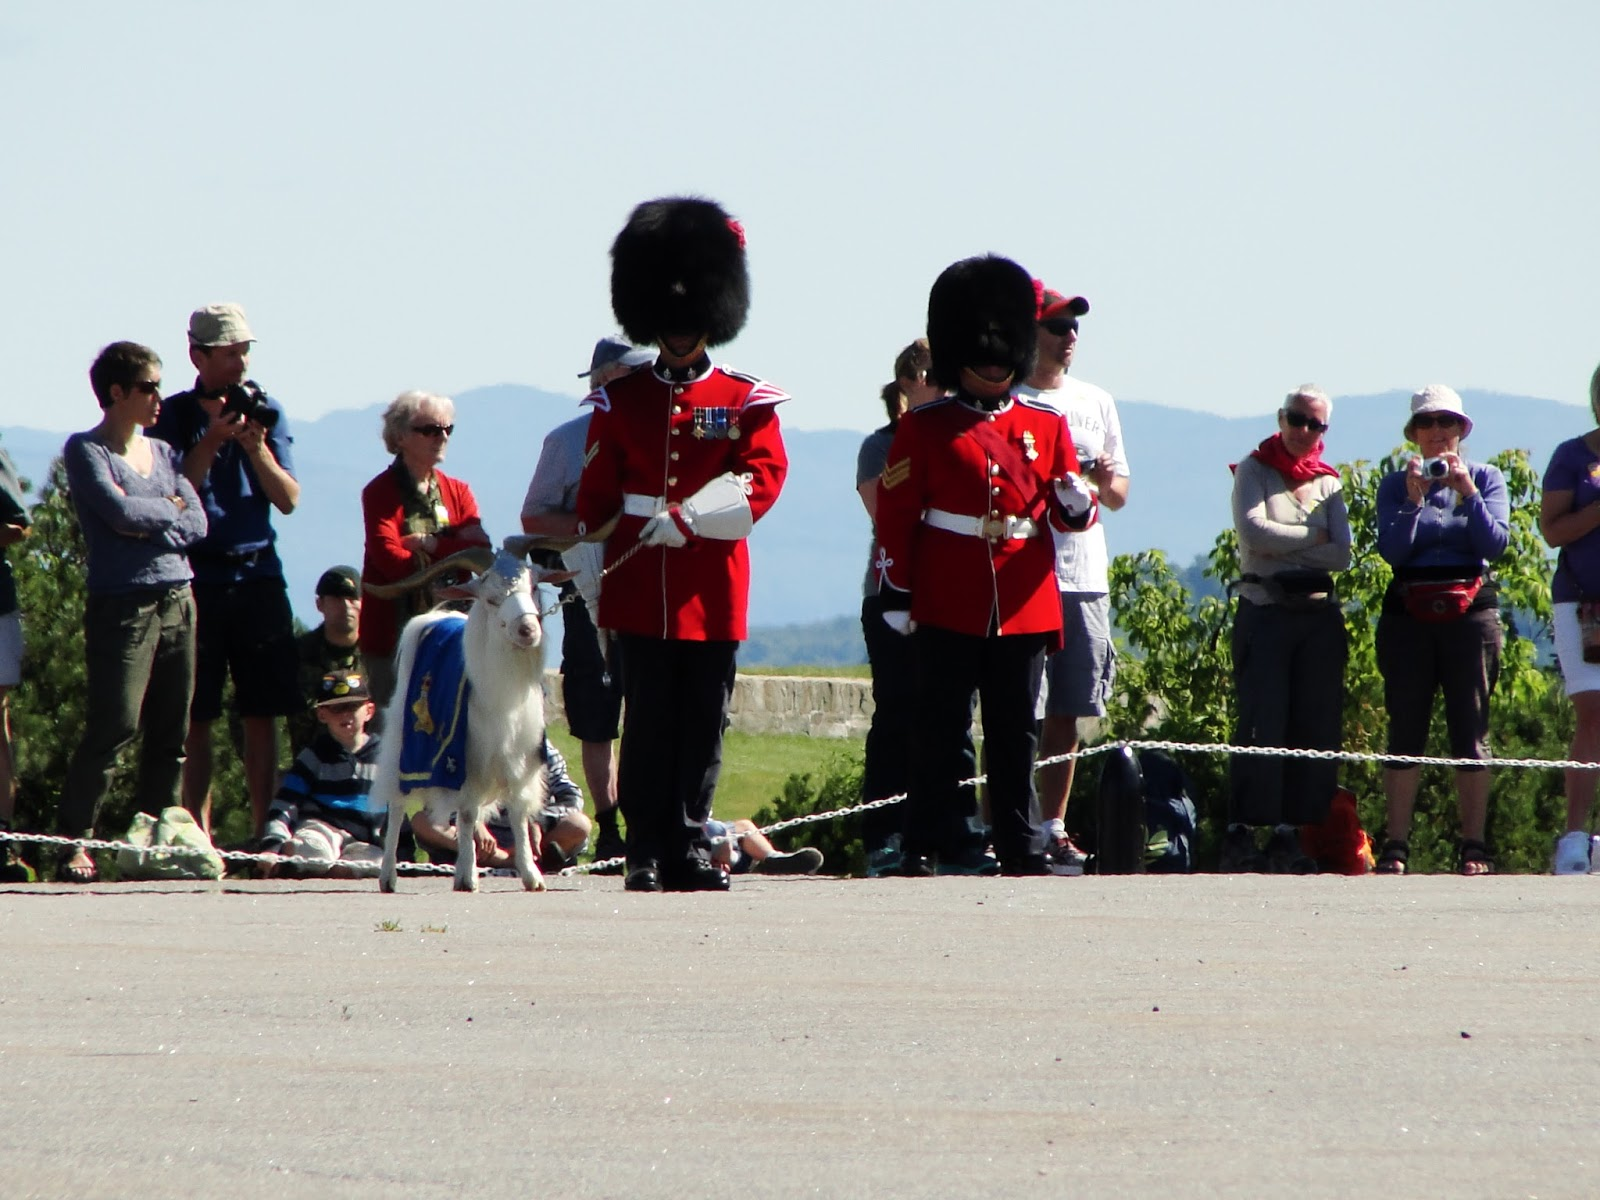 Changing of the Guards - and a goat! From Travel Writers' Secrets: Top Quebec City Travel Tips